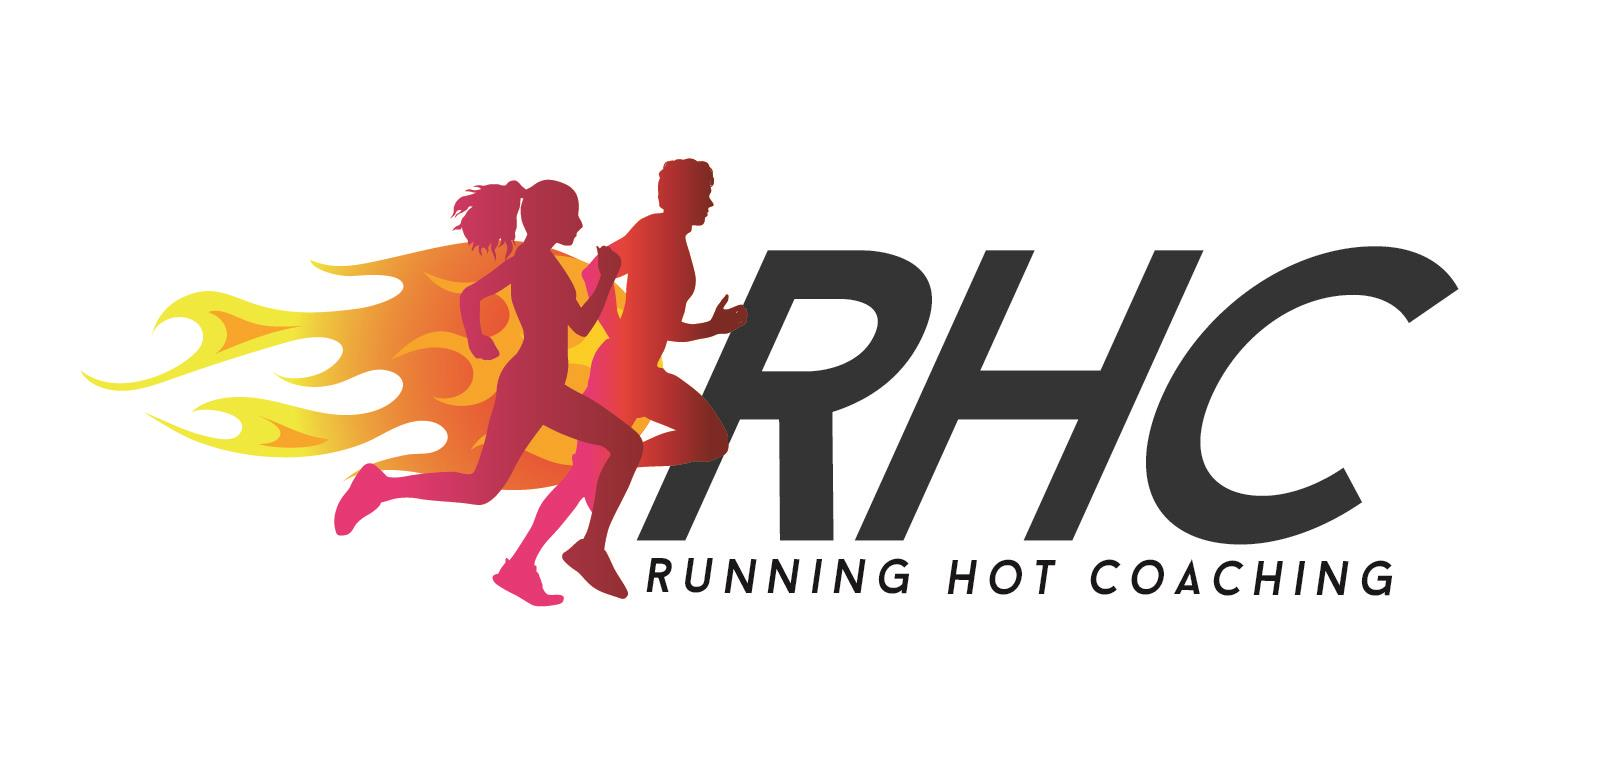 Running Hot Coaching Logo